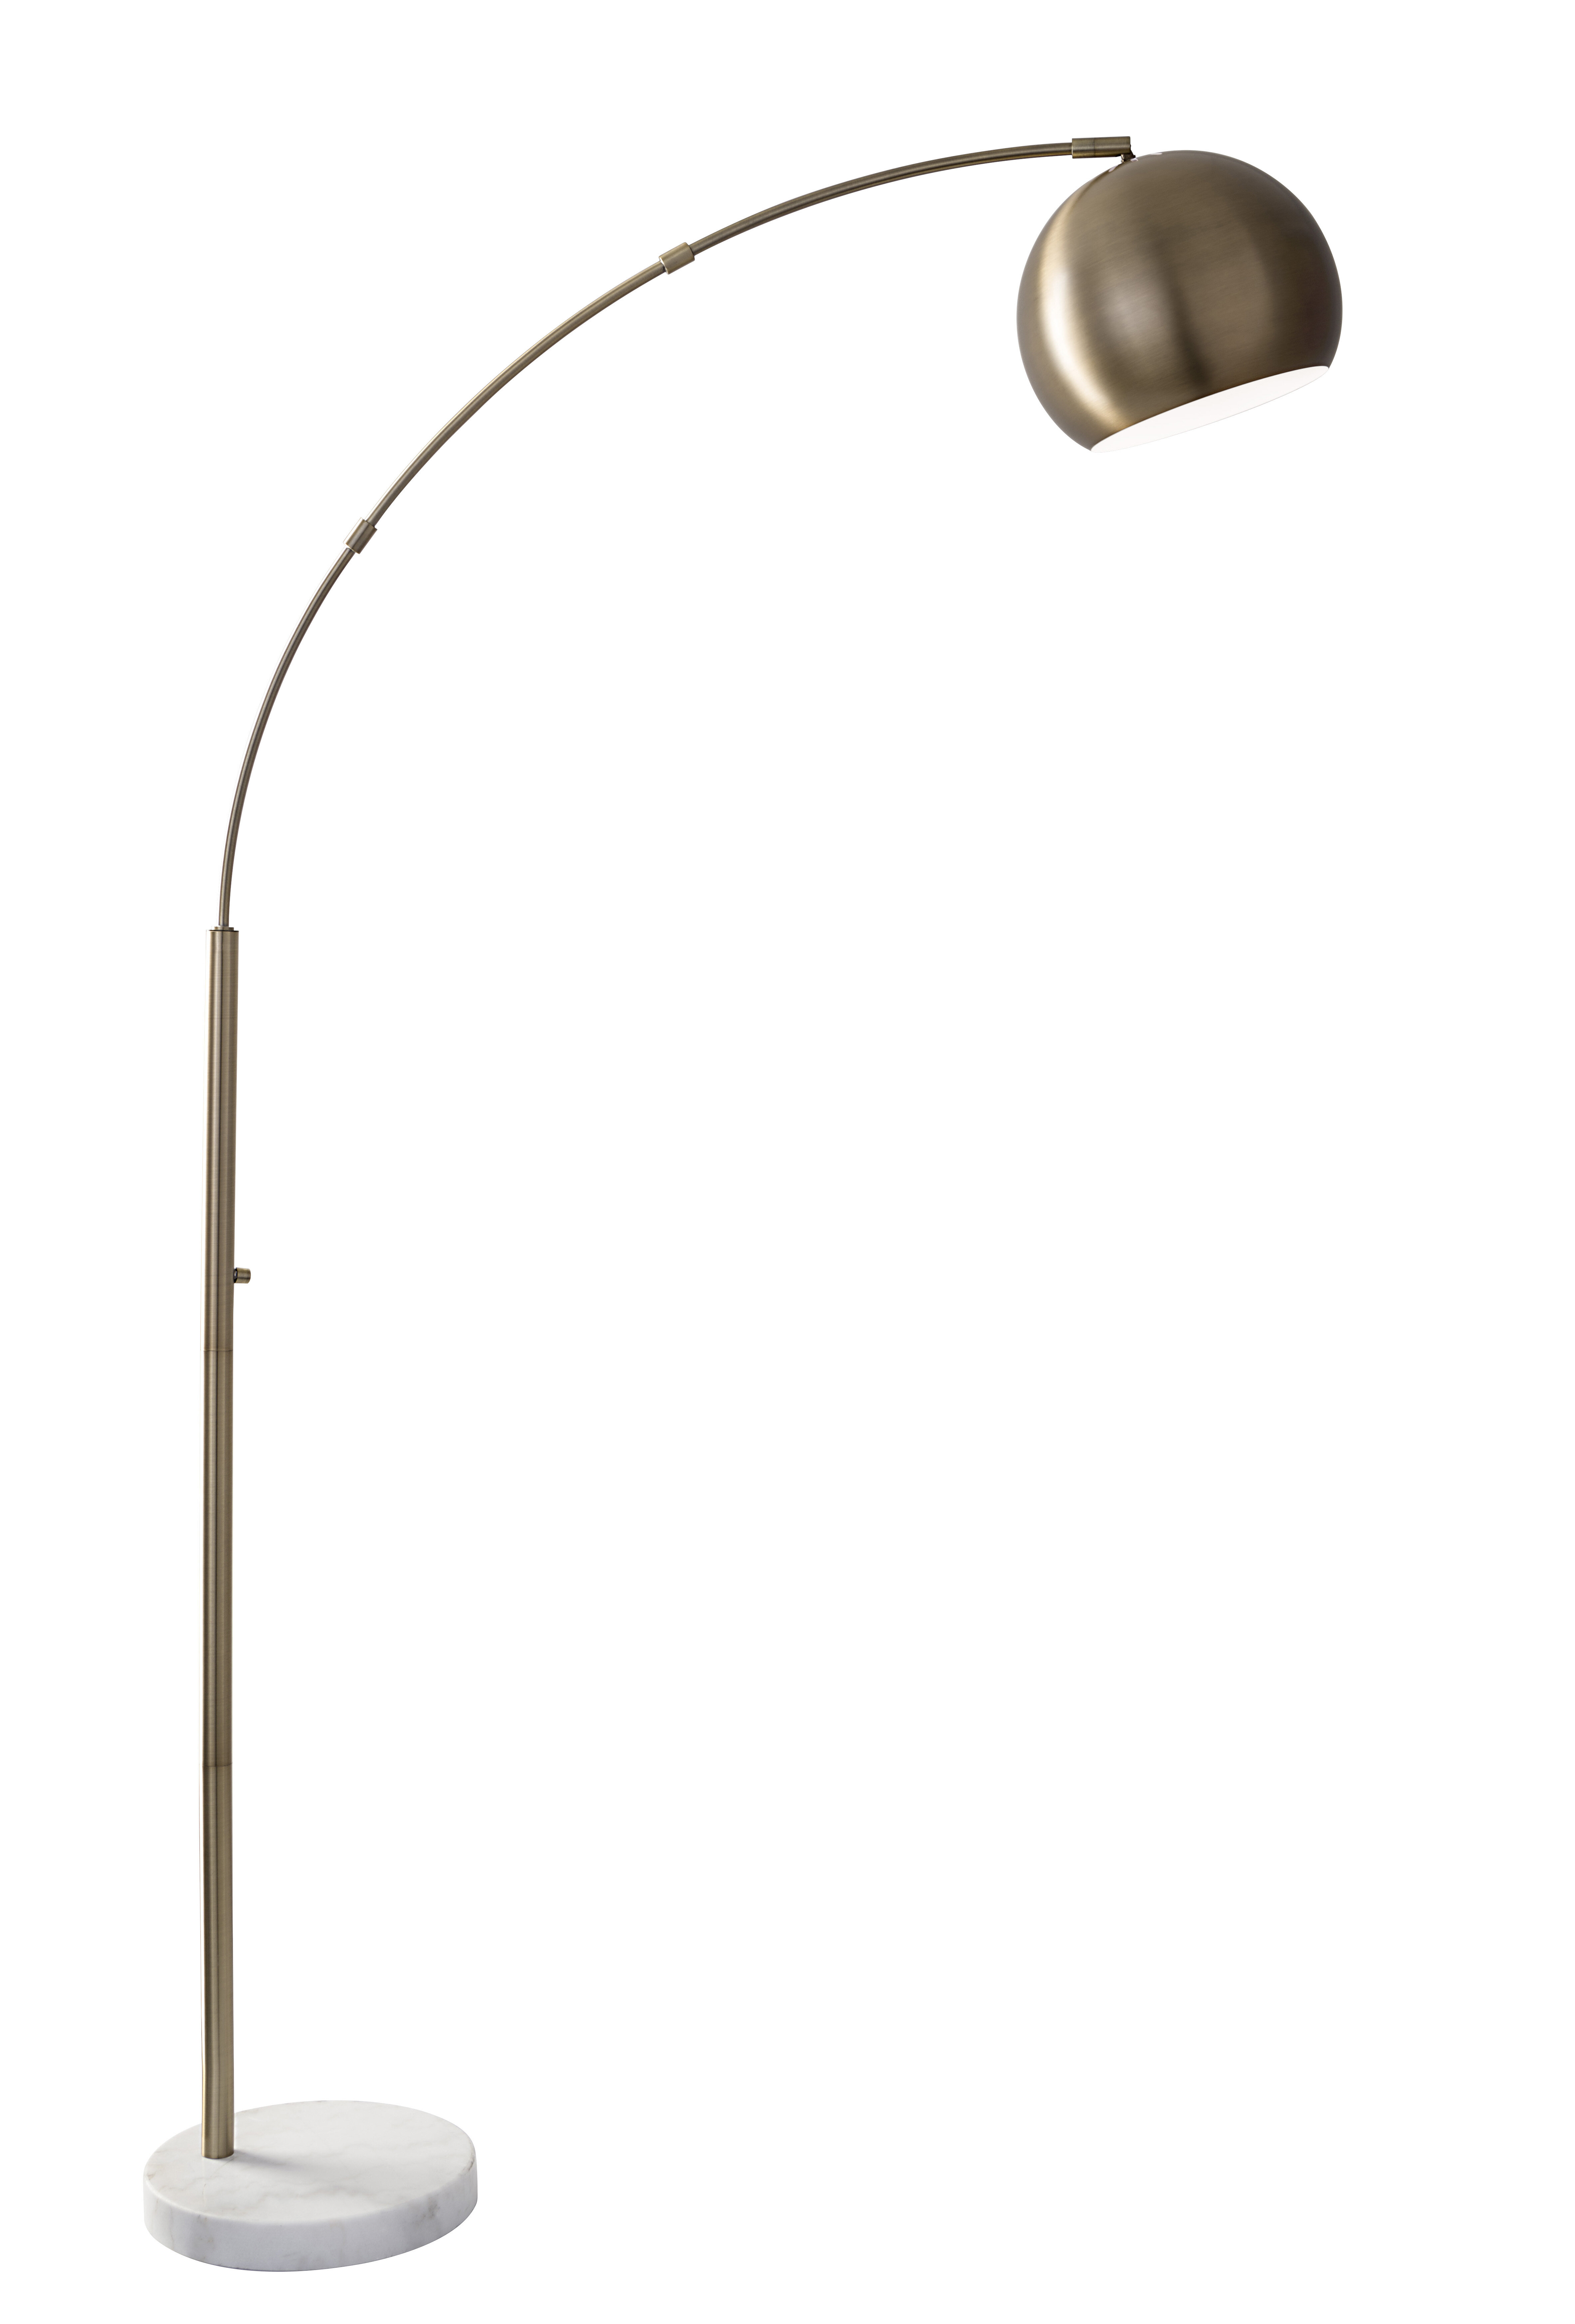 by arc lamp laki arch hive floor kai download image index